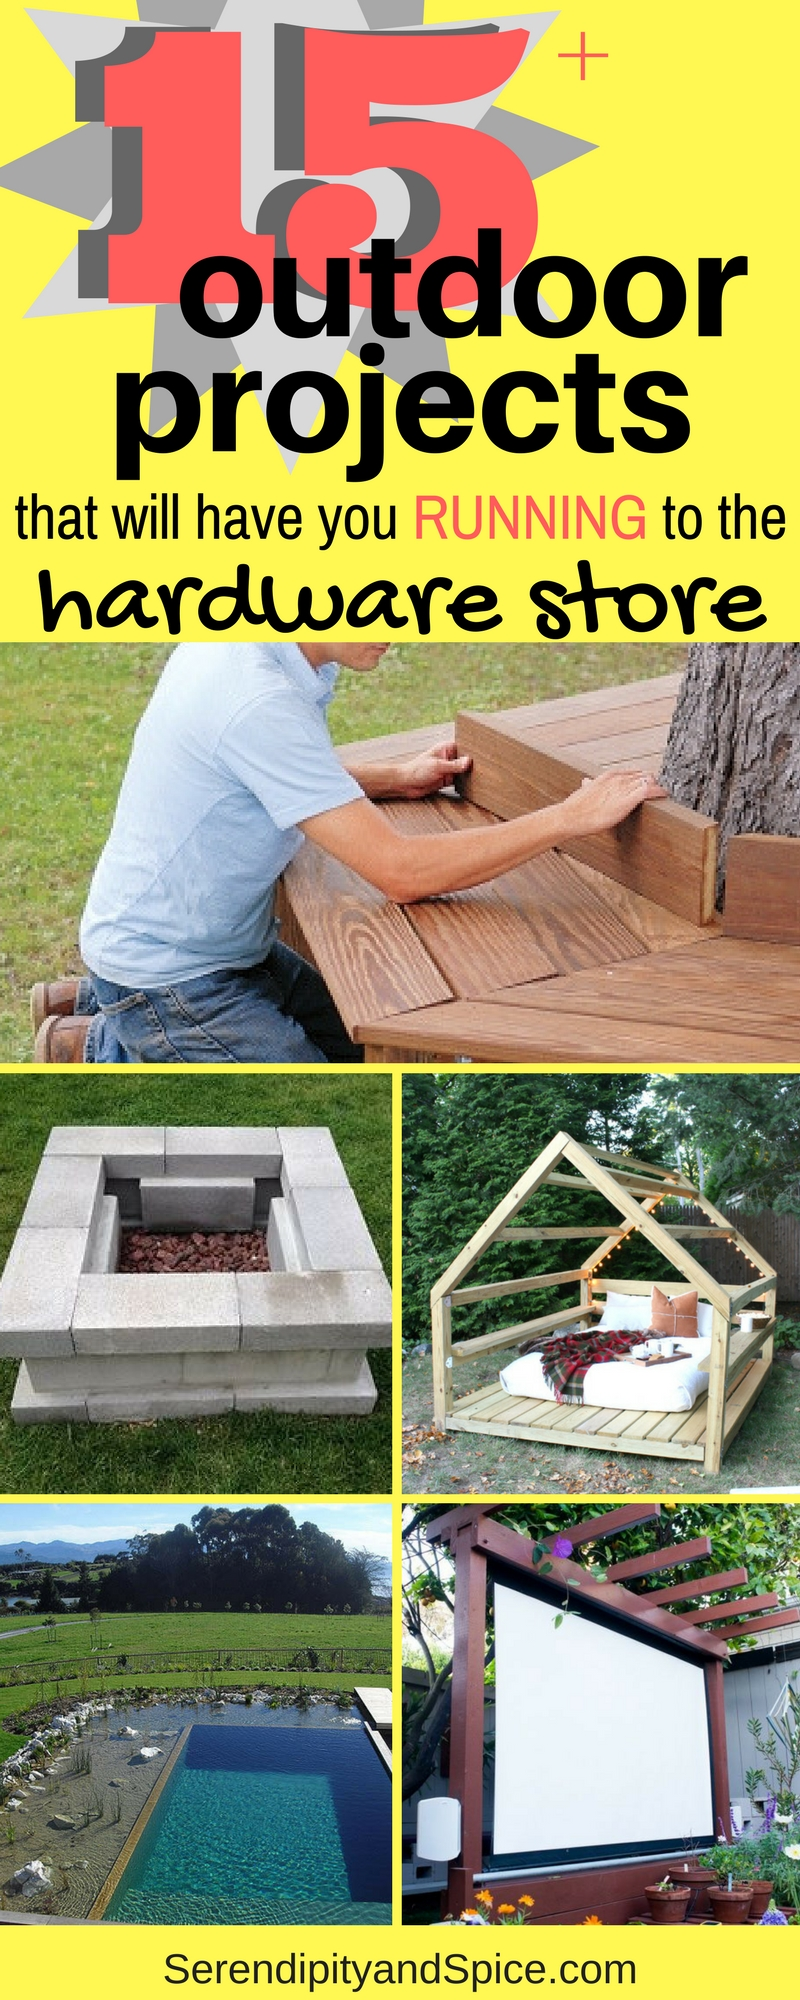 DIY outdoor projects that are amazing and will make your summer epic!